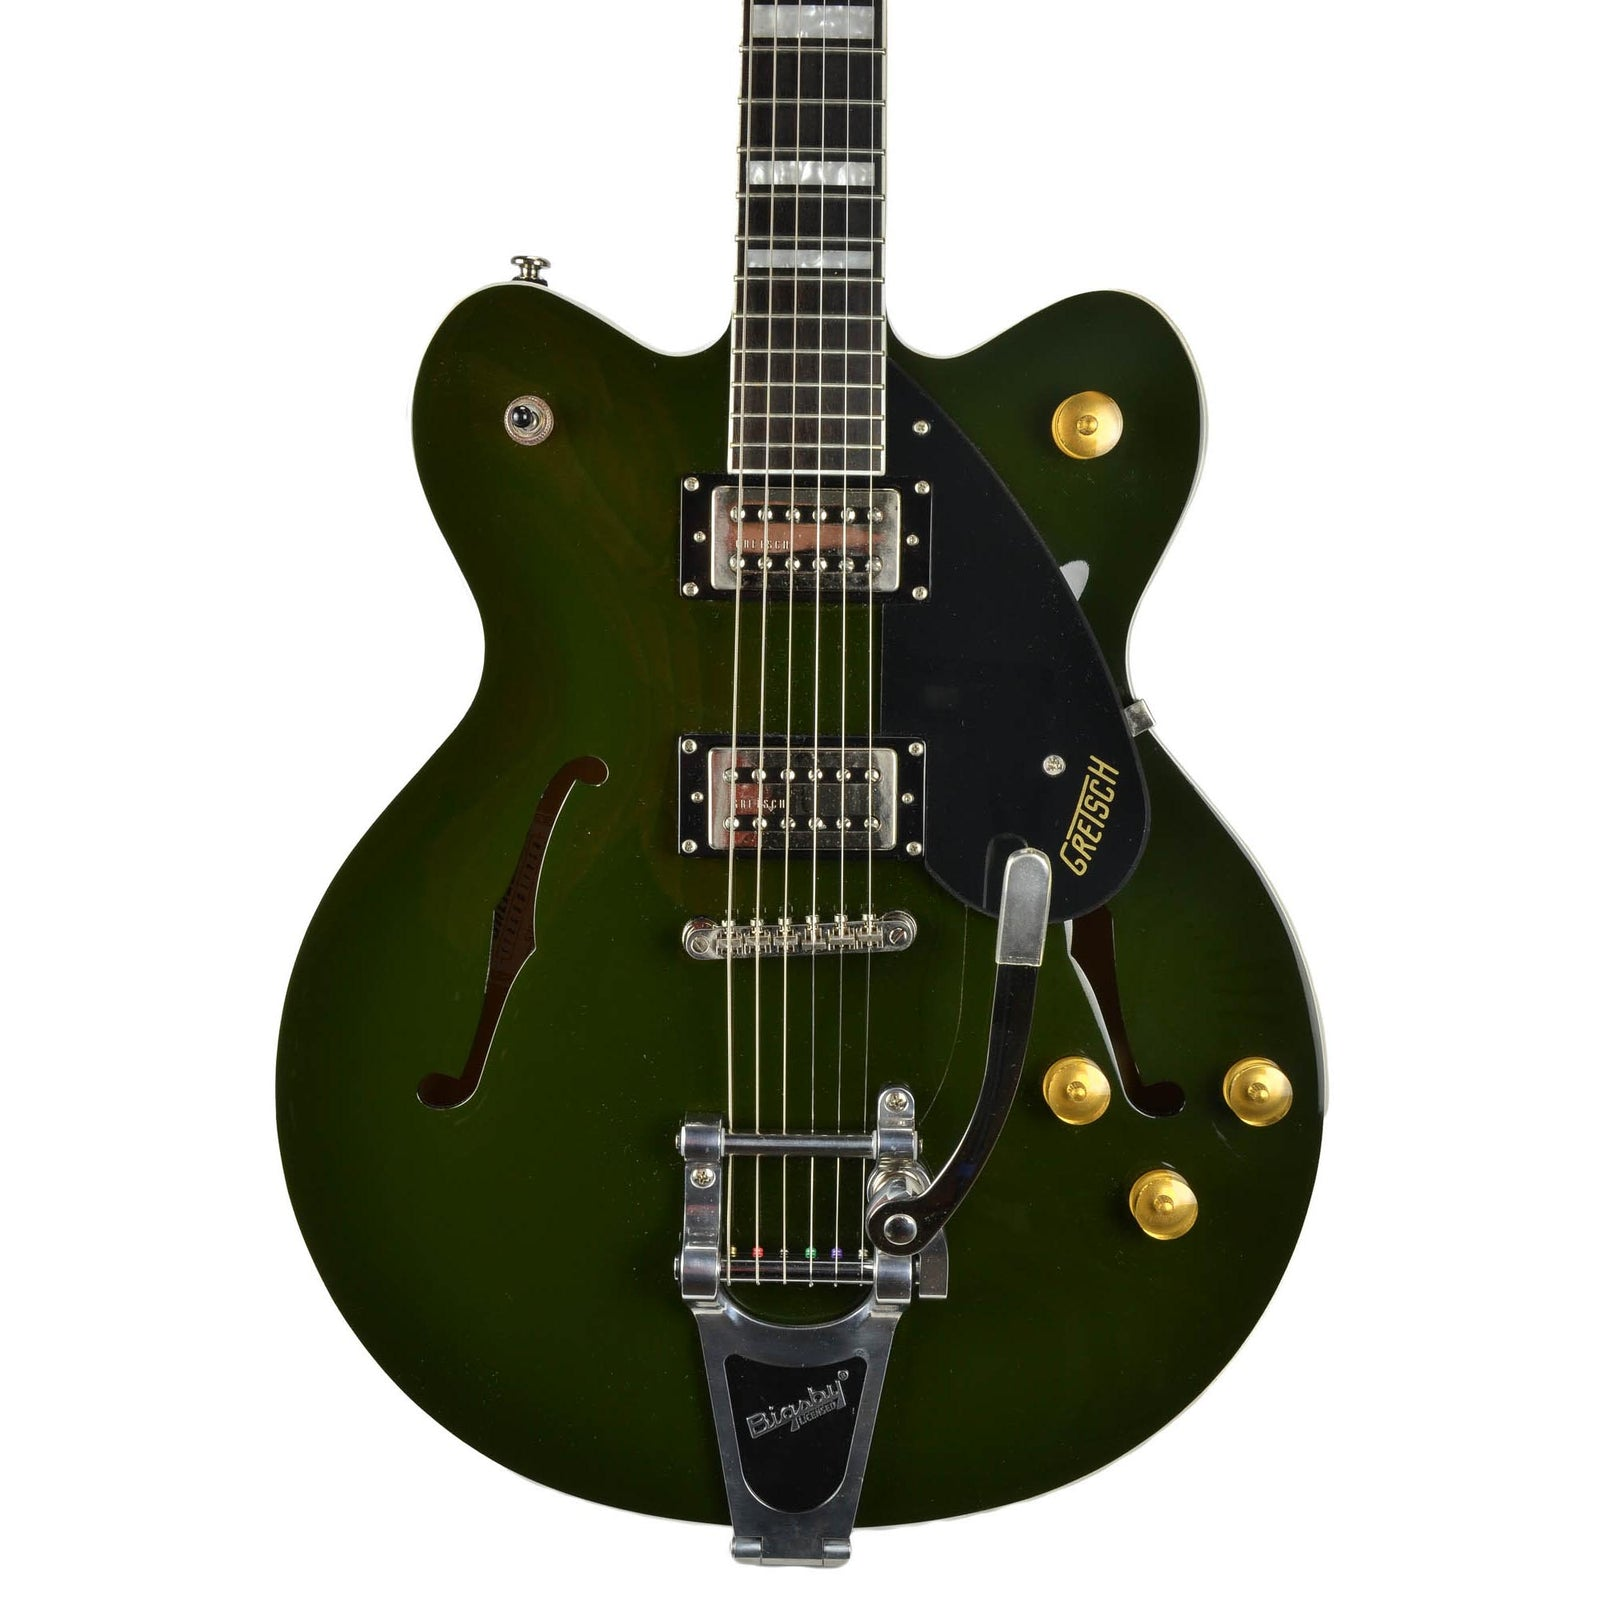 Gretsch G2622-TG With HSC - Used